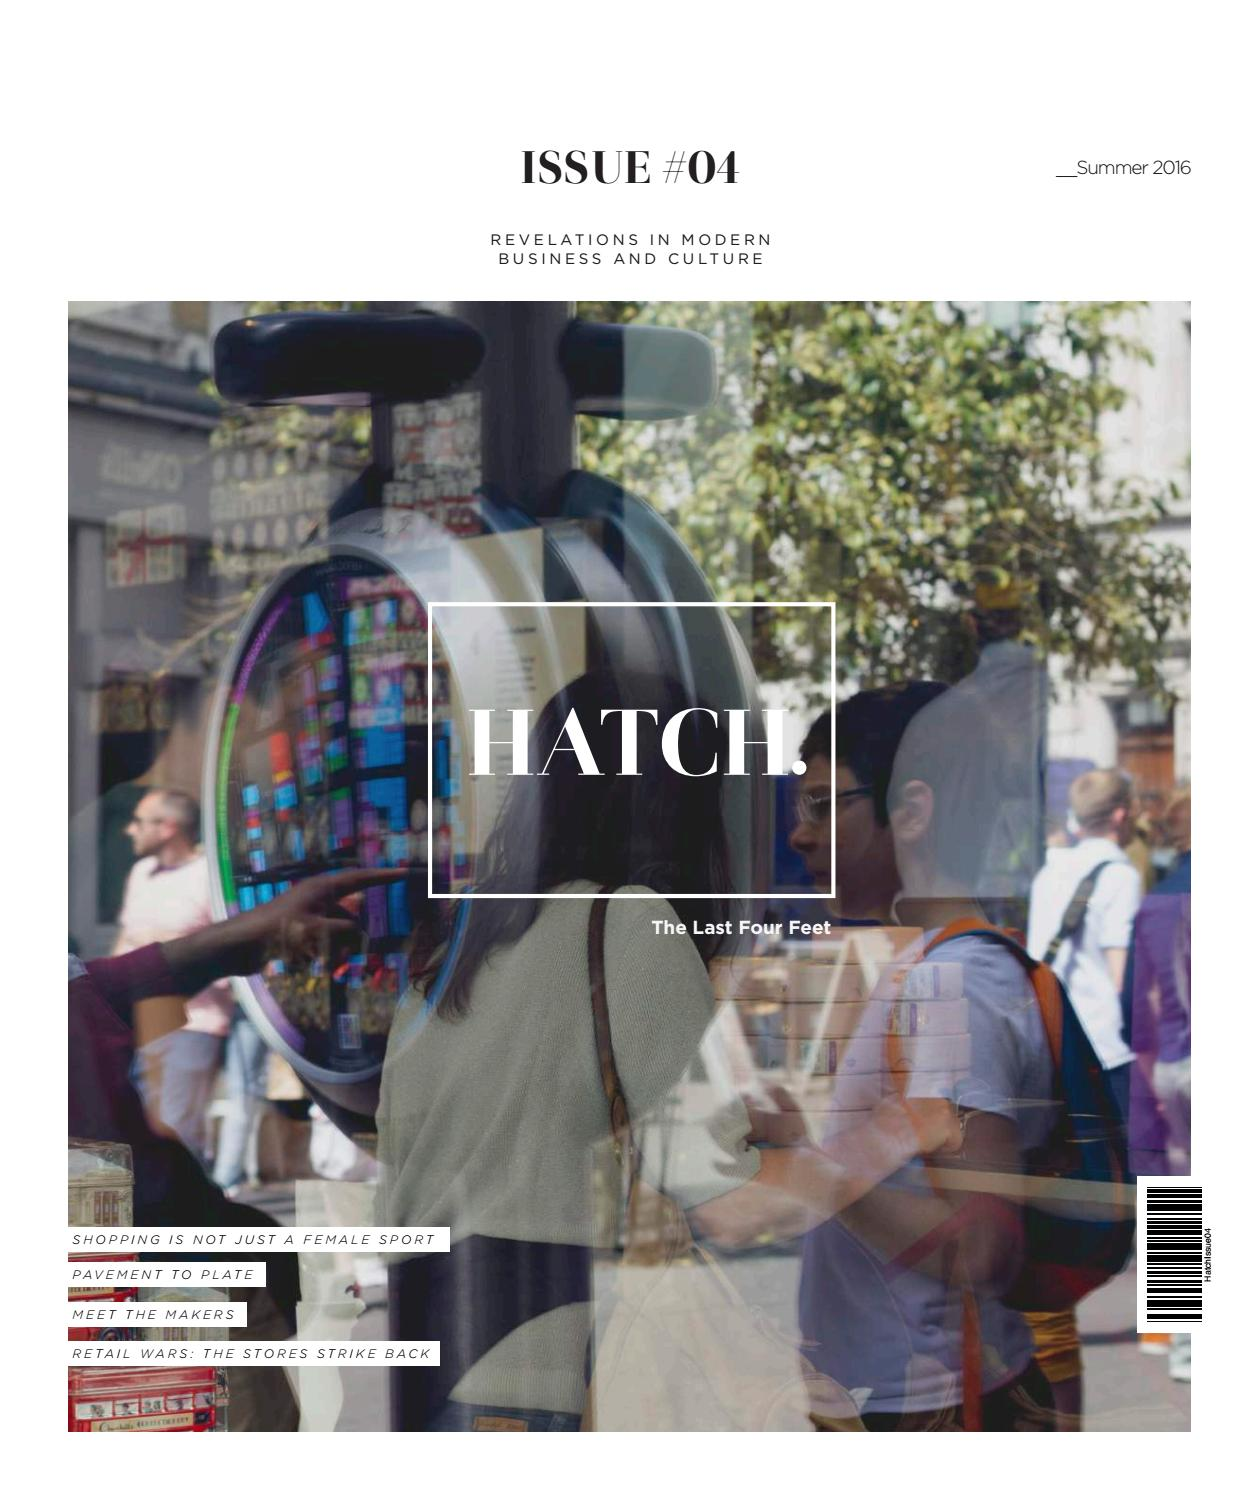 9e6e048d4ed HATCH  4  The Last 4 Feet by KEMOSABE - issuu